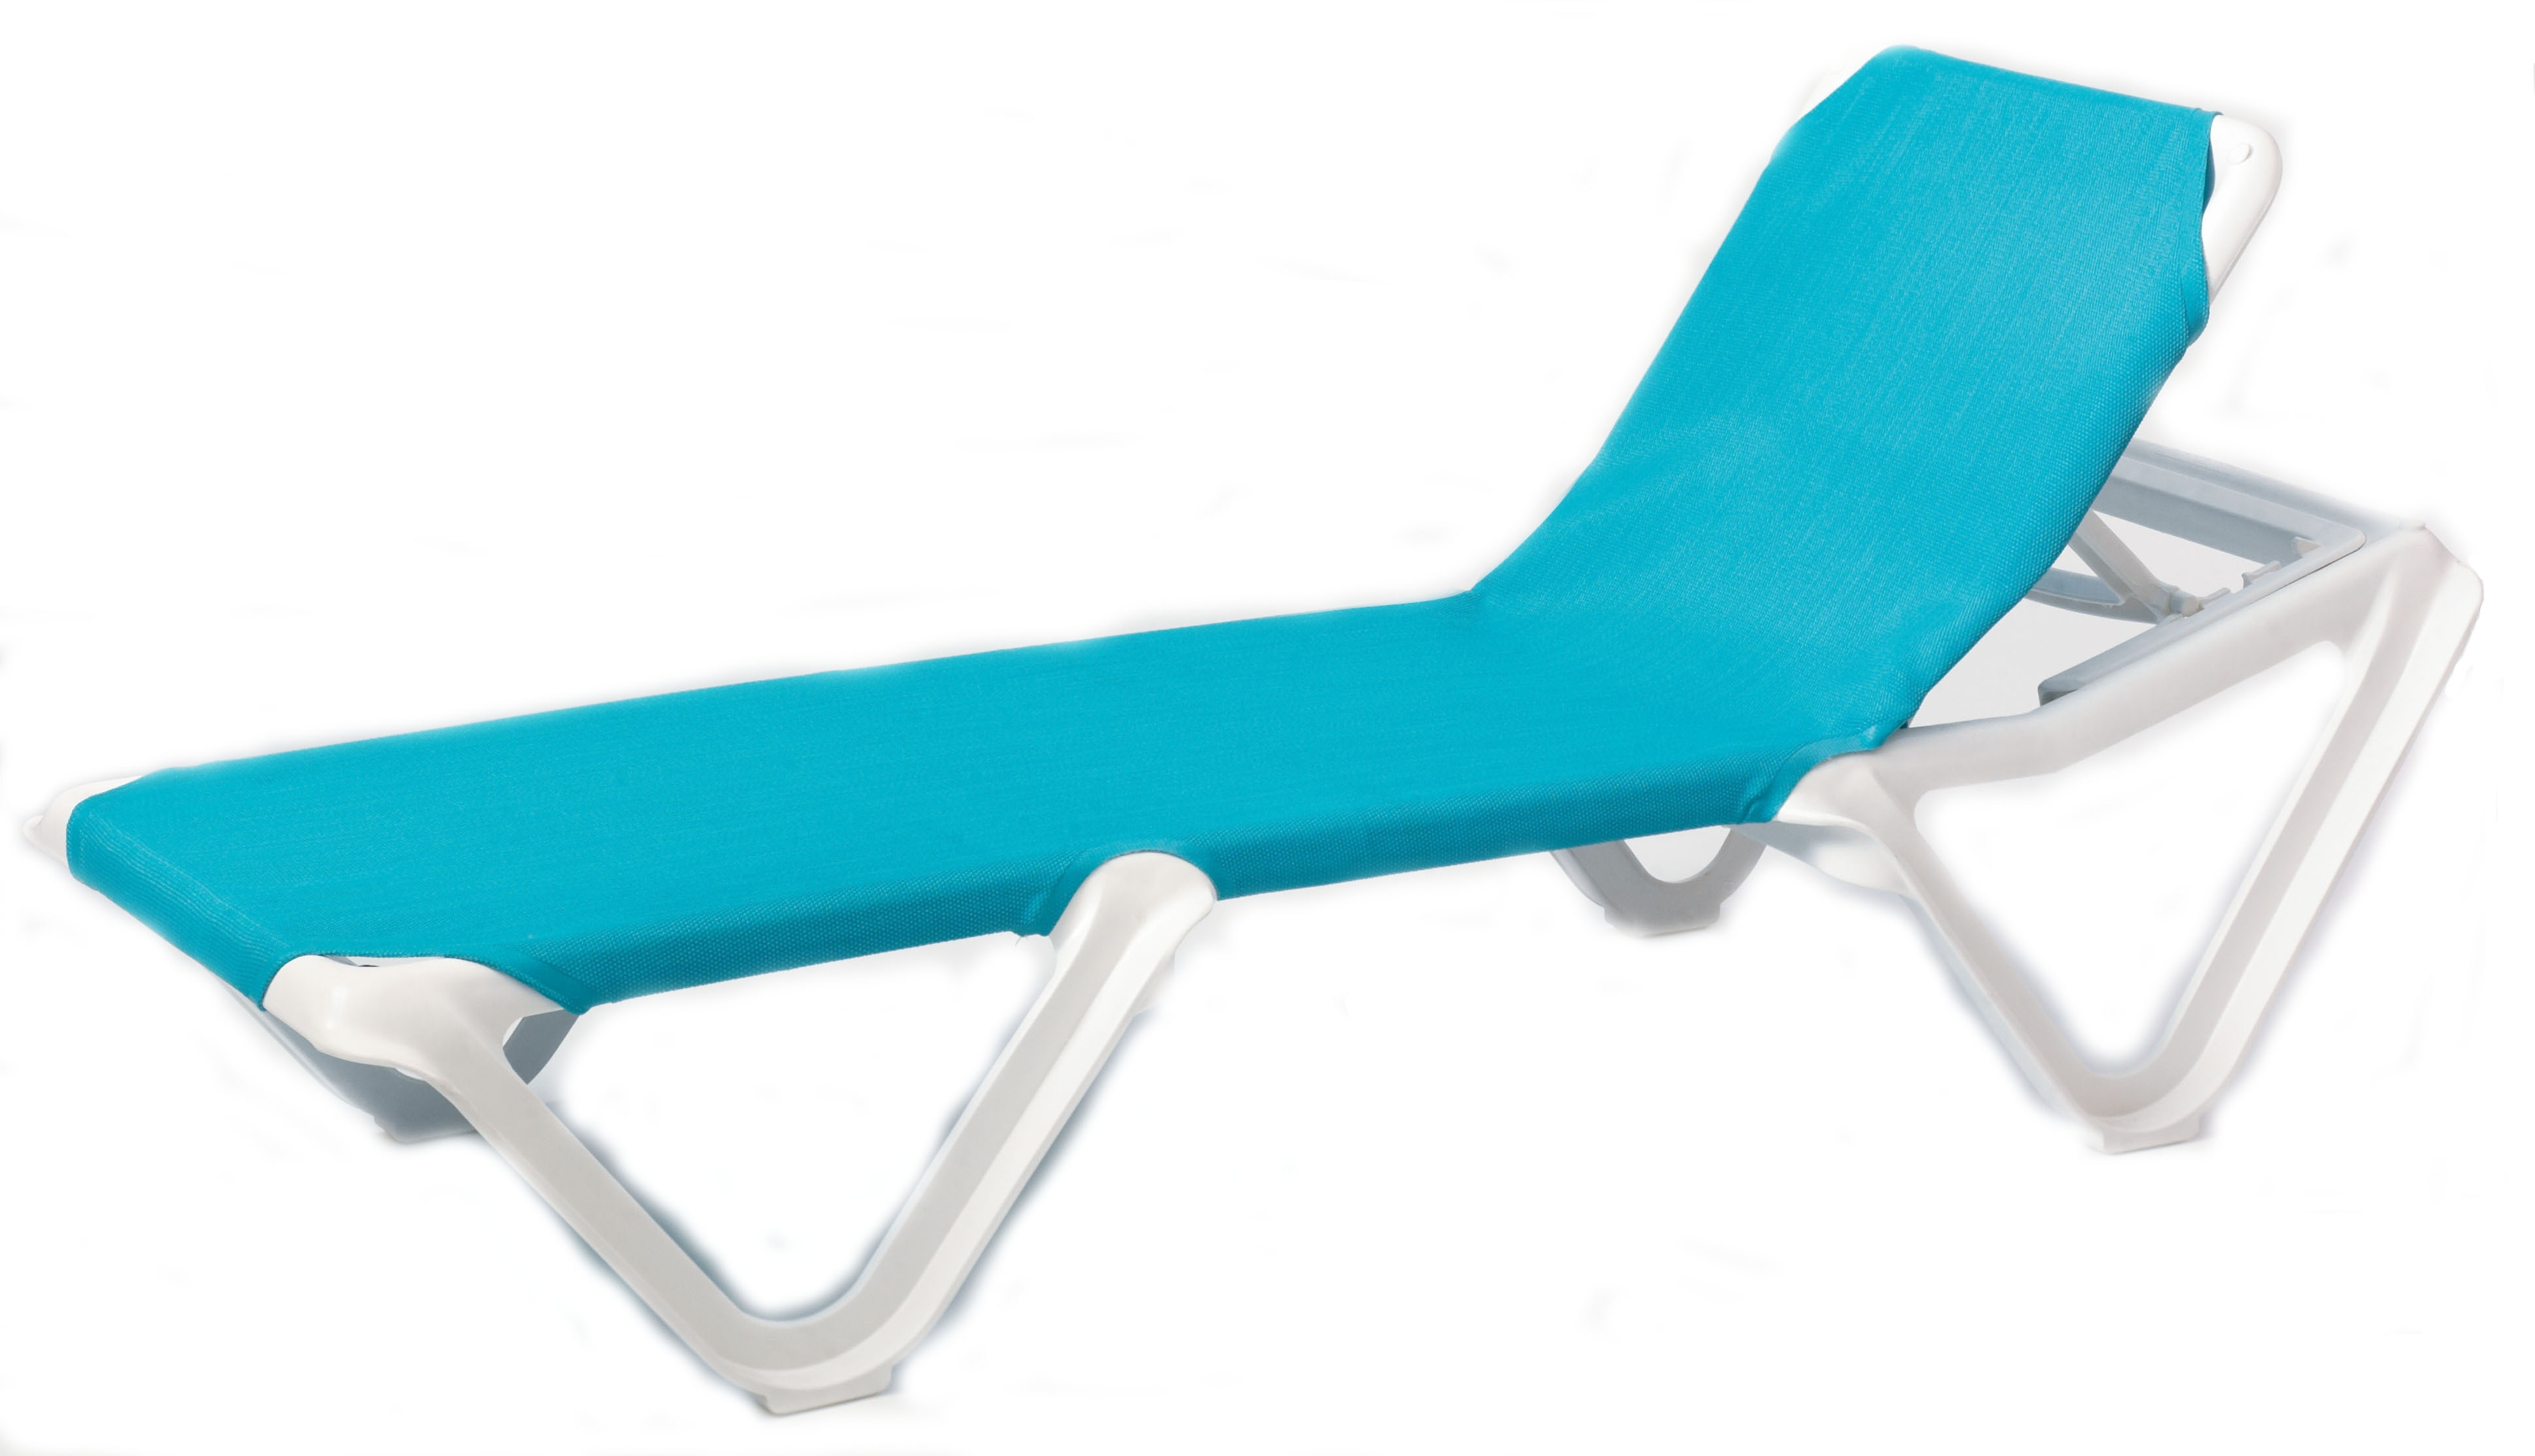 Enjoy The Sunshine Well Through Pool Chaise Lounge Chairs Within Most Recent Outdoor Chaise Lounge Chairs Under $ (View 8 of 15)